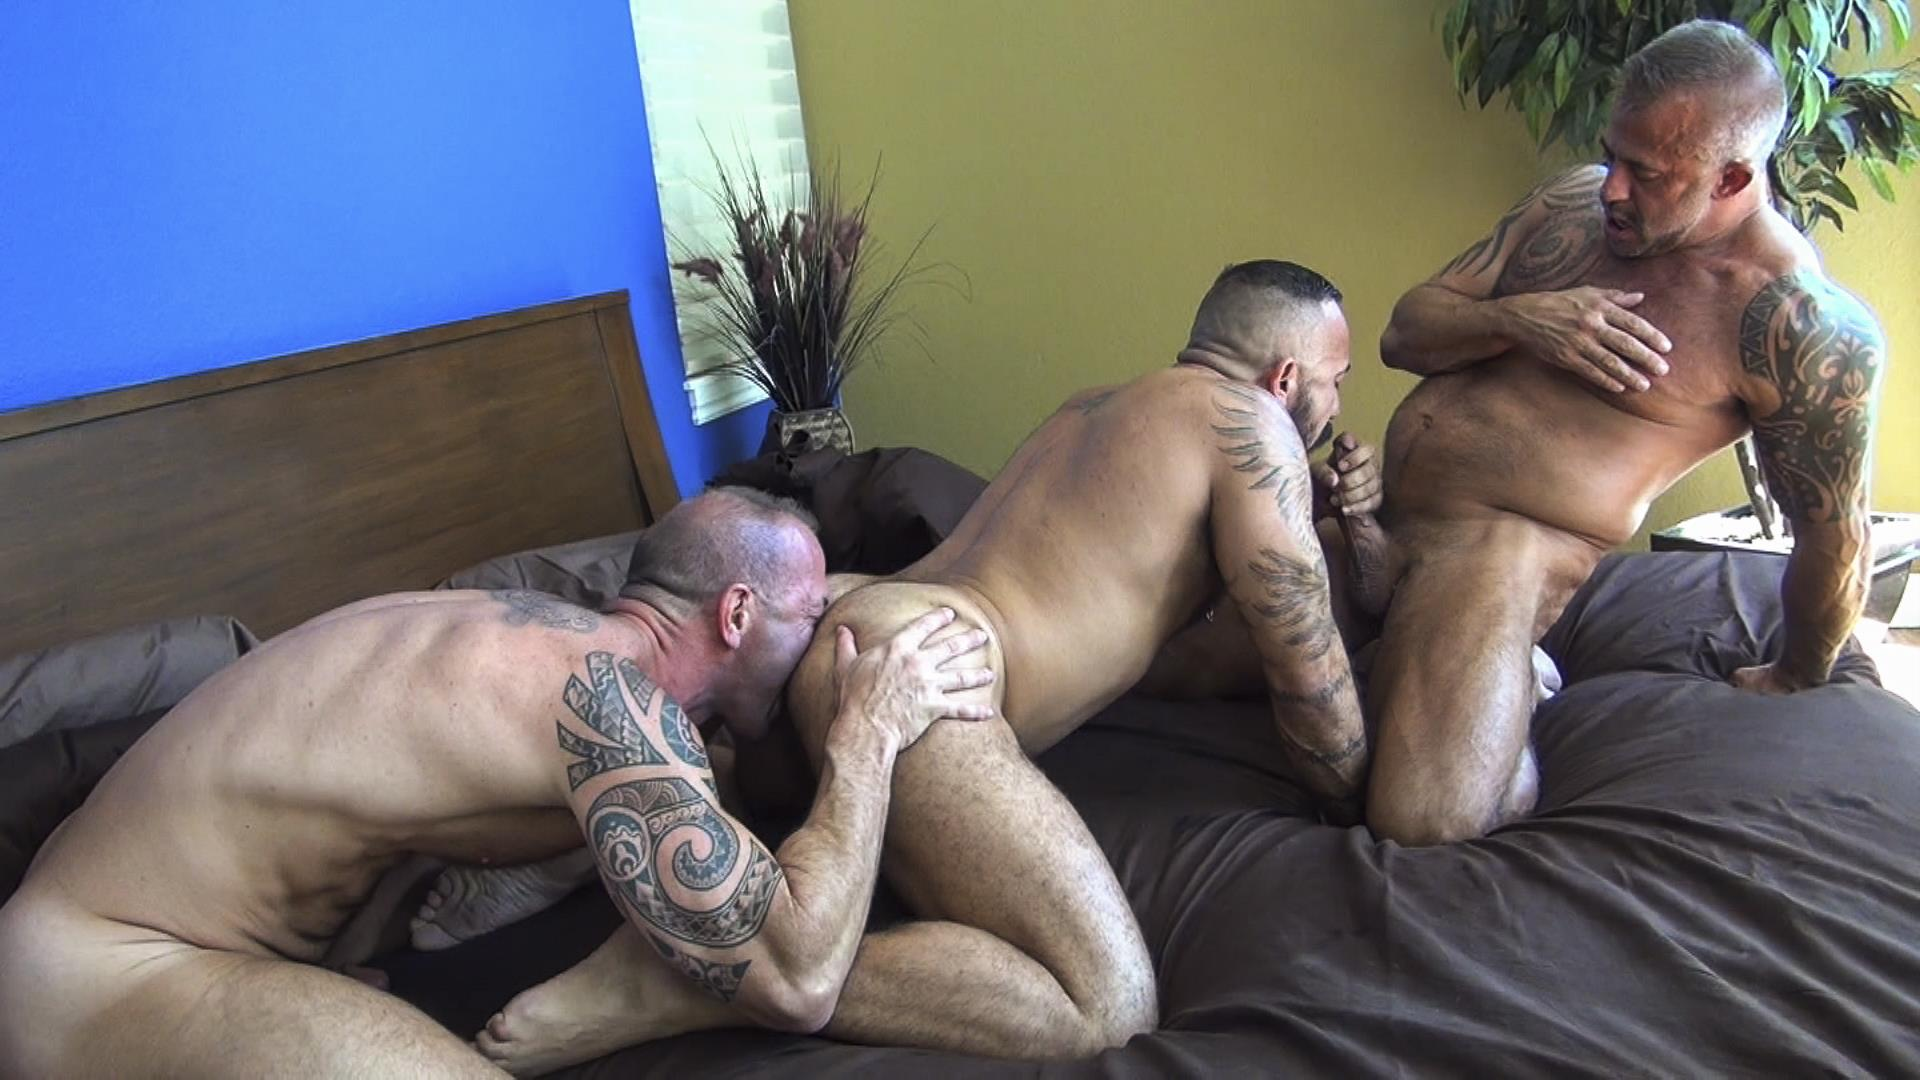 Raw-Fuck-Club-Alessio-Romero-and-Jon-Galt-and-Vic-Rocco-Hairy-Muscle-Daddy-Bareback-Amateur-Gay-Porn-7 Hairy Muscle Daddy Threeway Double Bareback Penetration